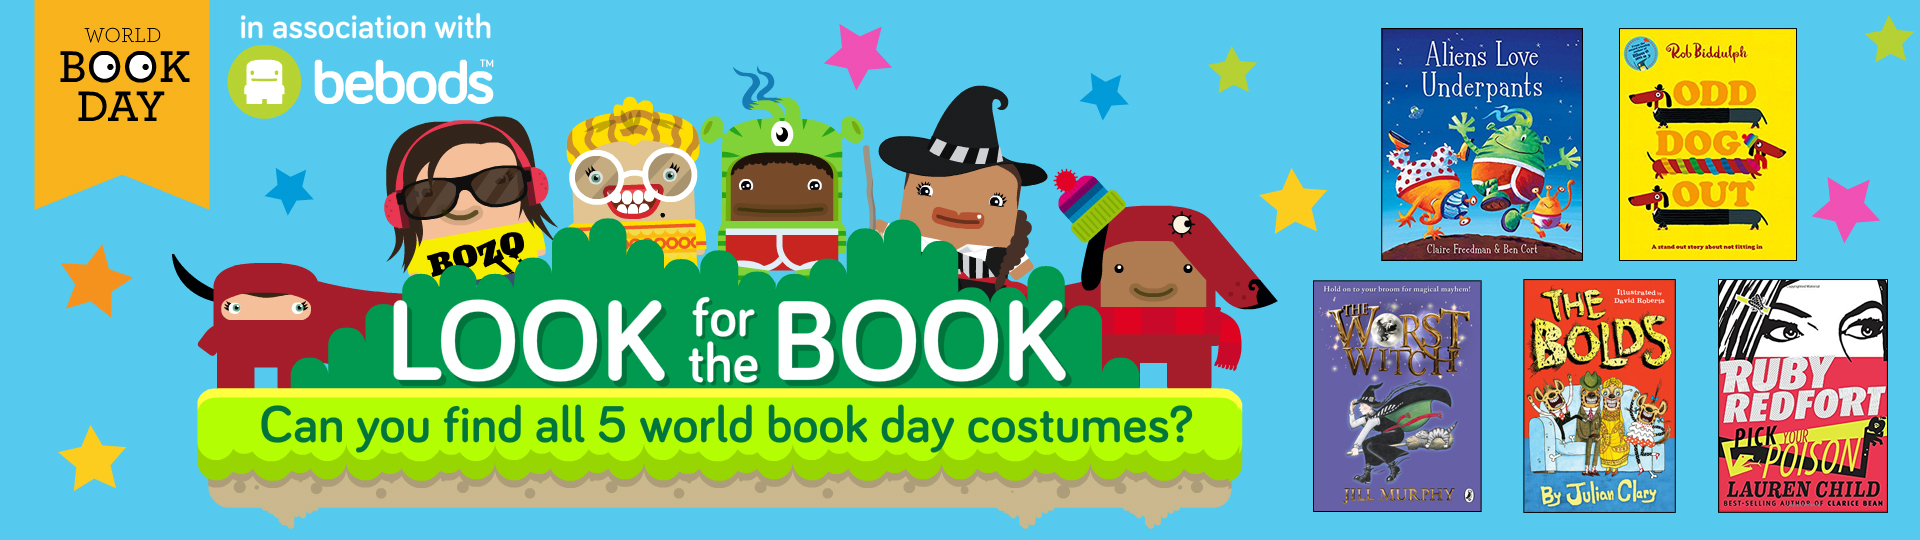 2018 clipart world book day. Look for the